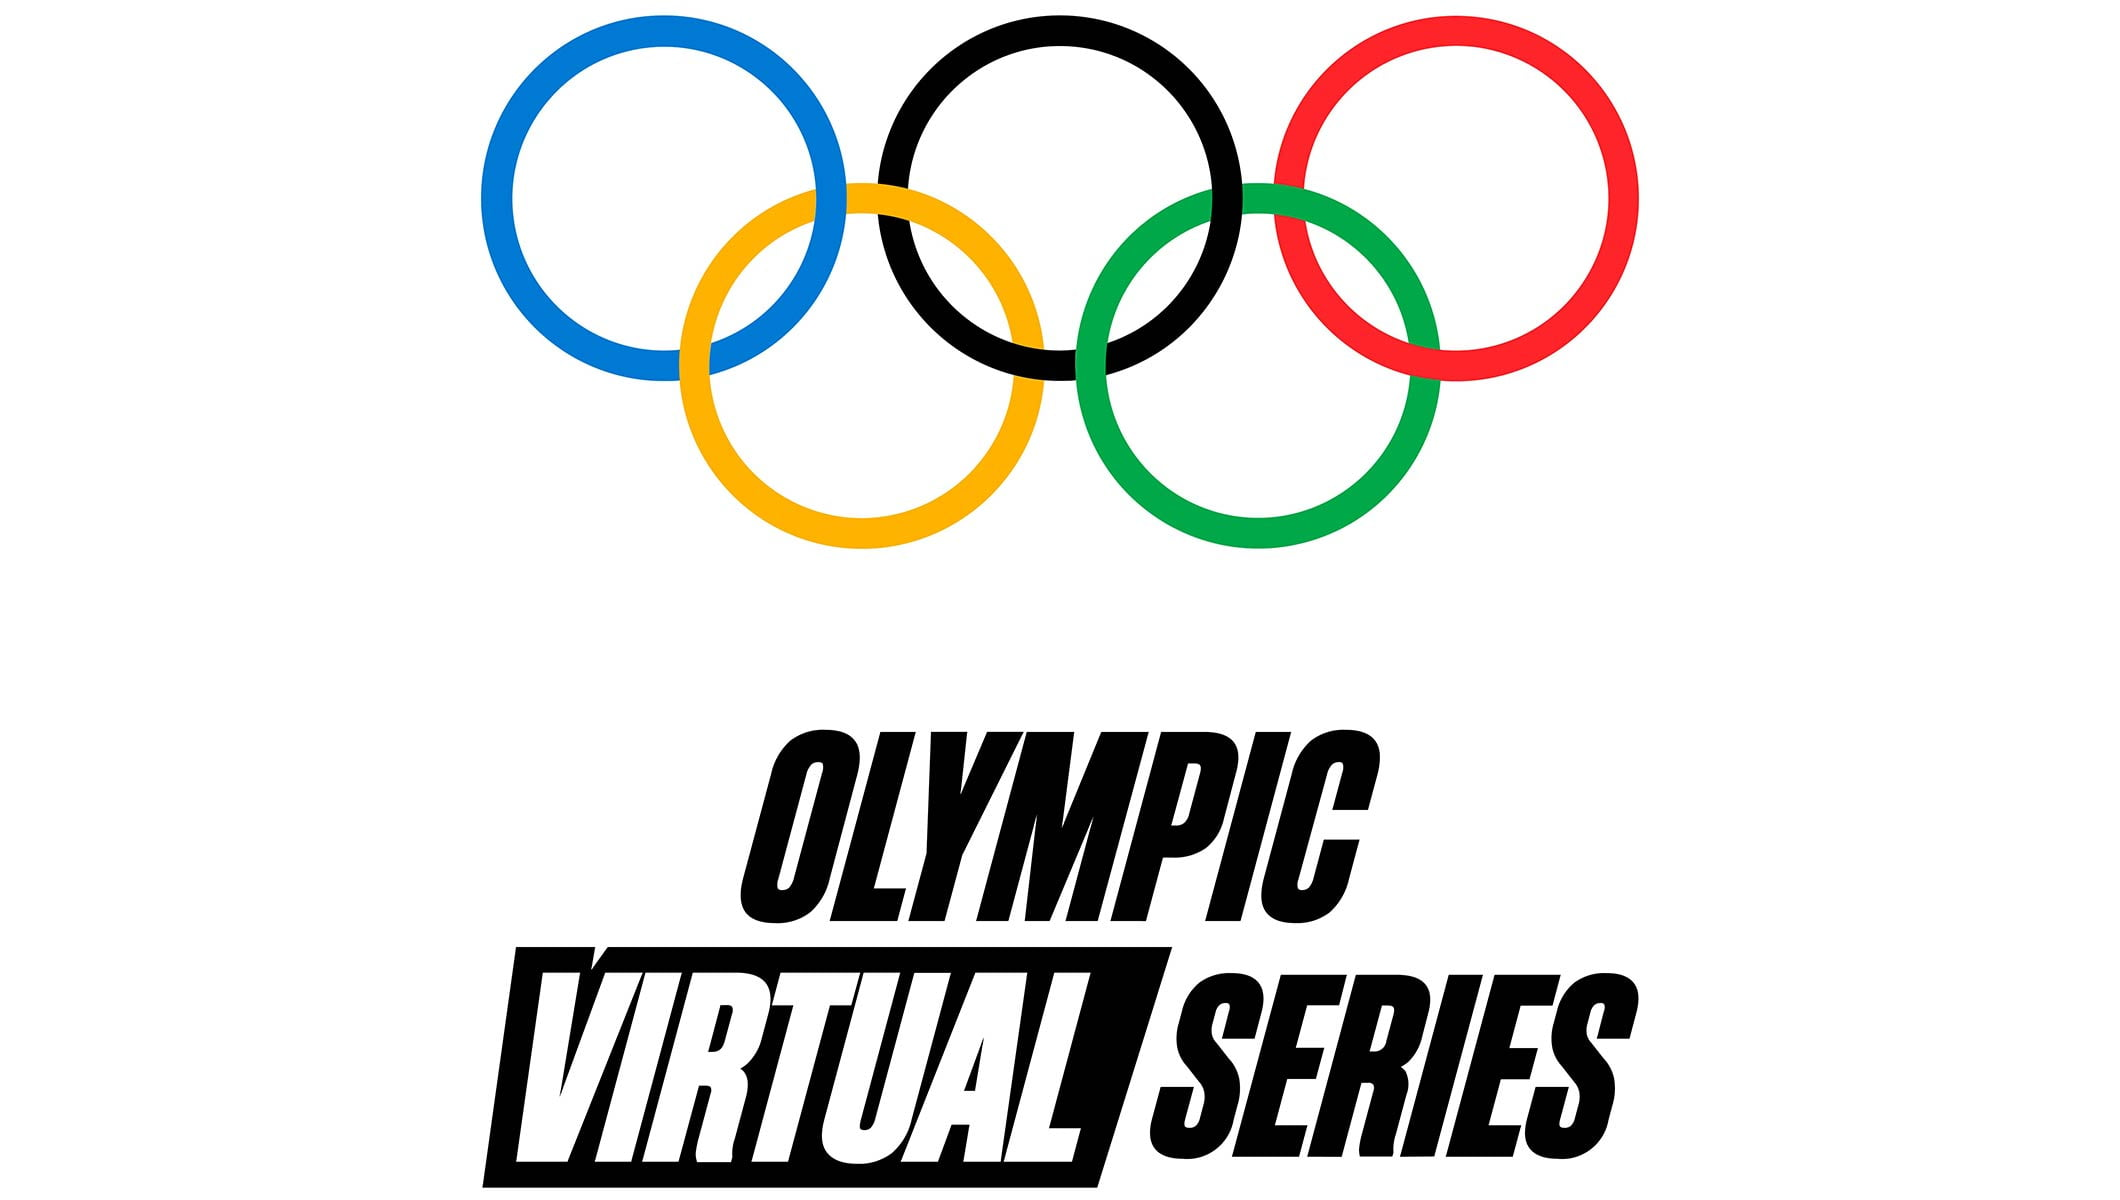 First-ever Olympic Virtual Series will feature baseball, motor sport and cycling